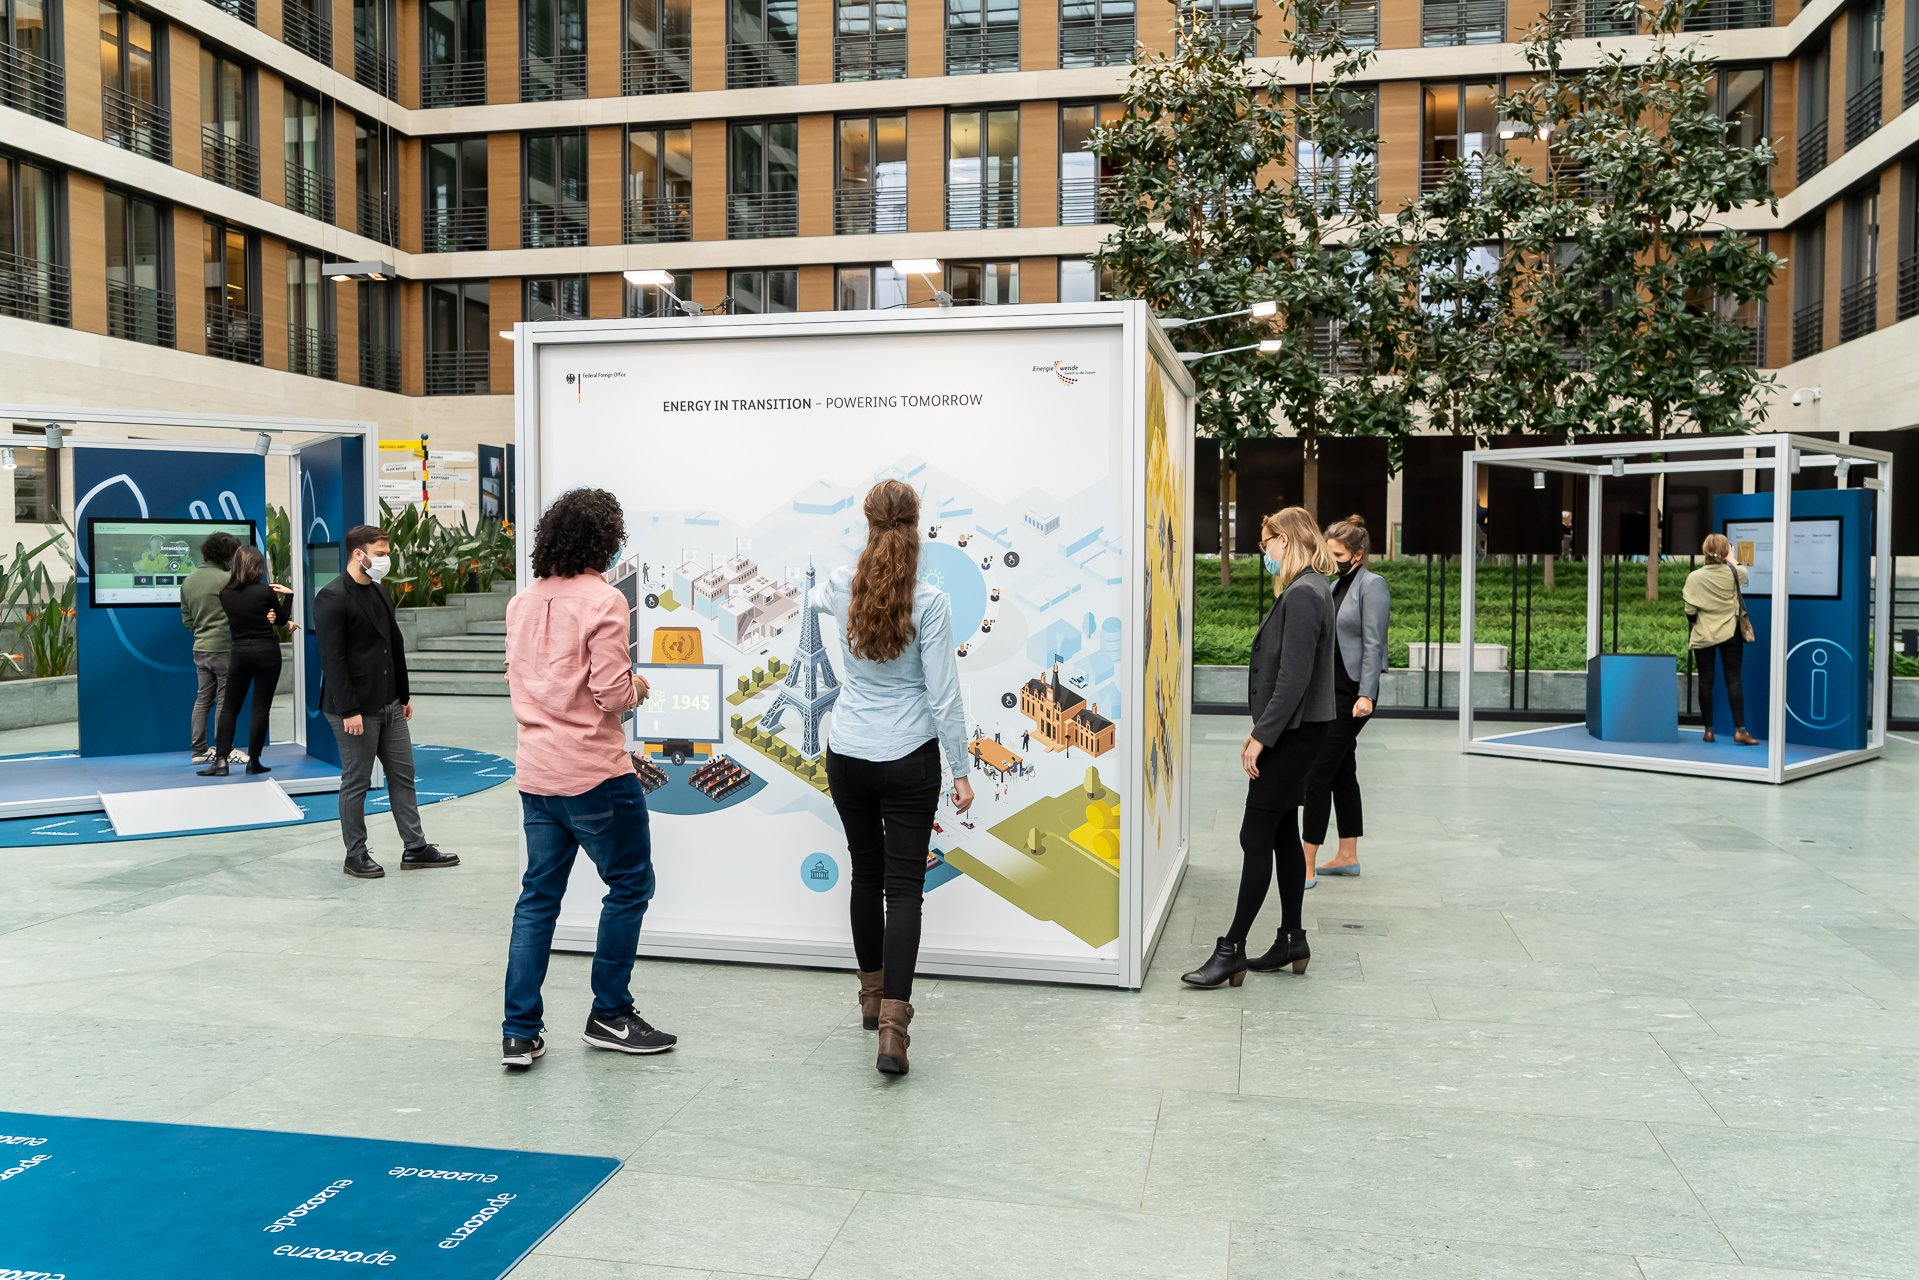 A snapshot of visitors at the travelling exhibition. The cube-shaped Energy in Transition station is in the foreground. Visitors are standing at the different sides of the cube and are pointing at and viewing the cube's animations that are lighting up. In the background you can see visitors standing at the other stations.